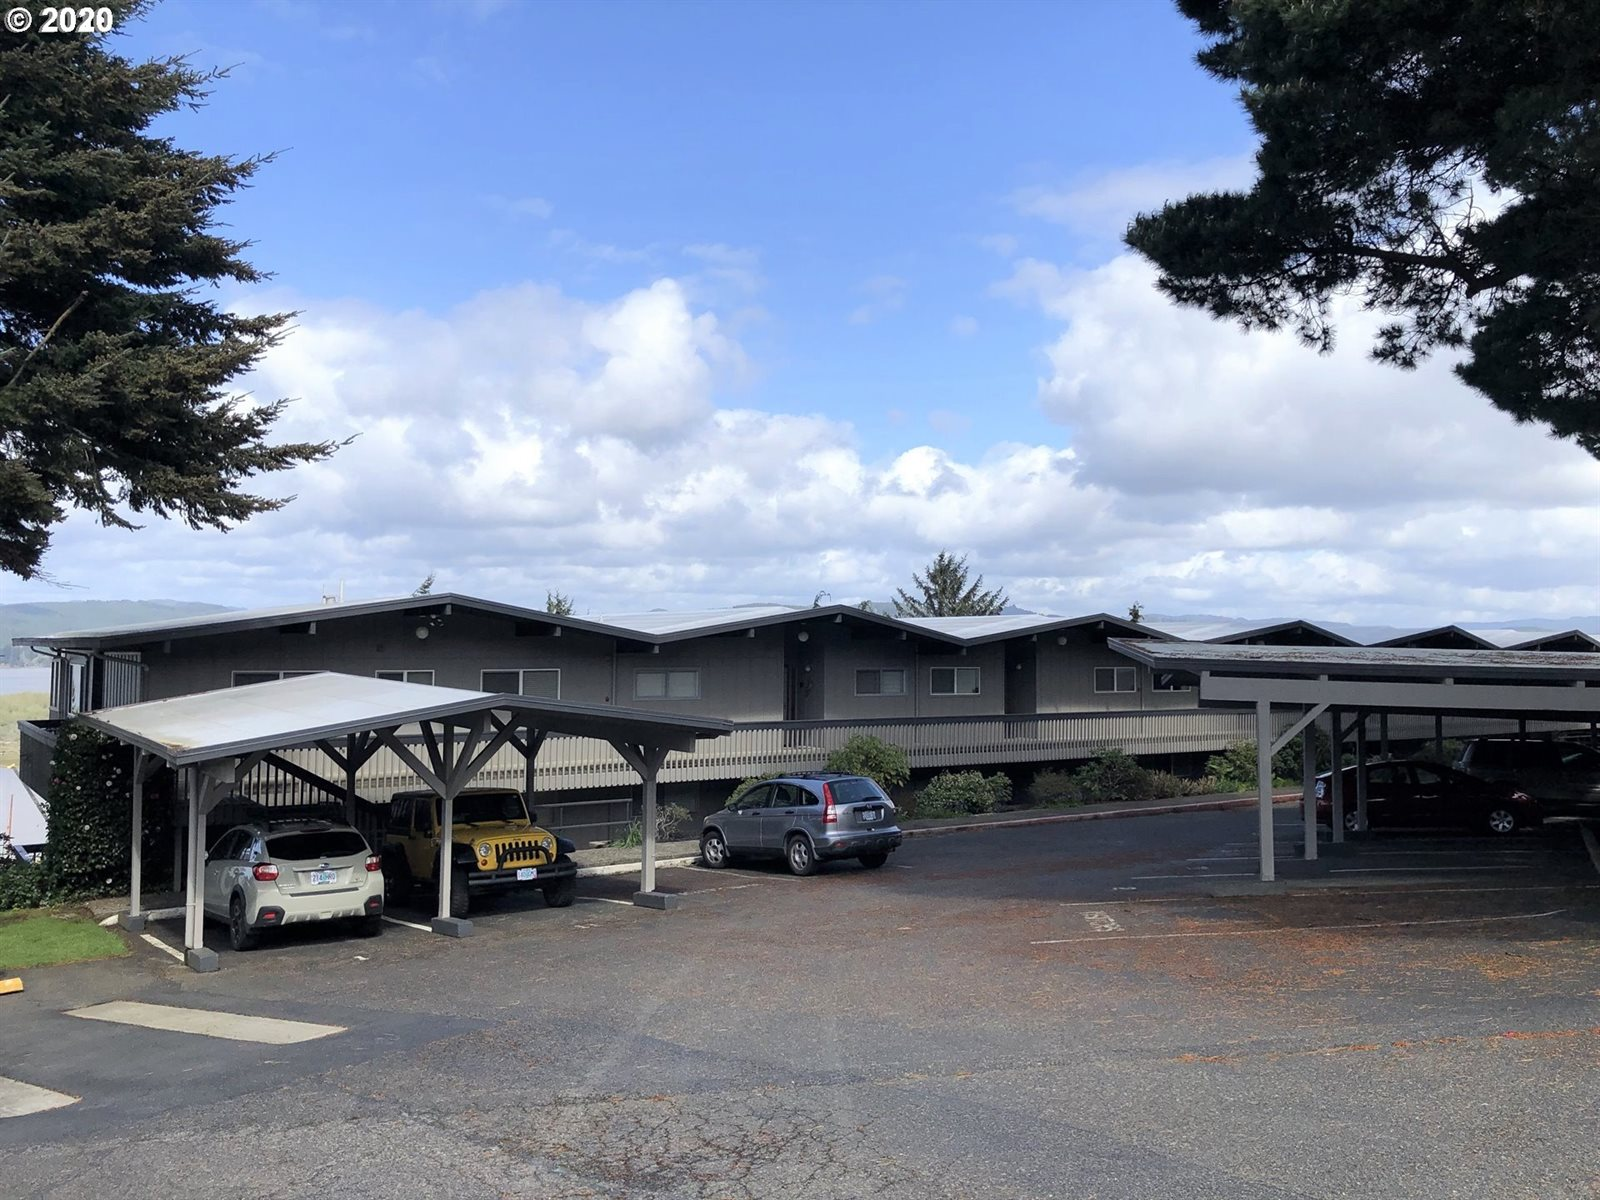 290 North 3RD Ct, #4, Coos Bay, OR 97420